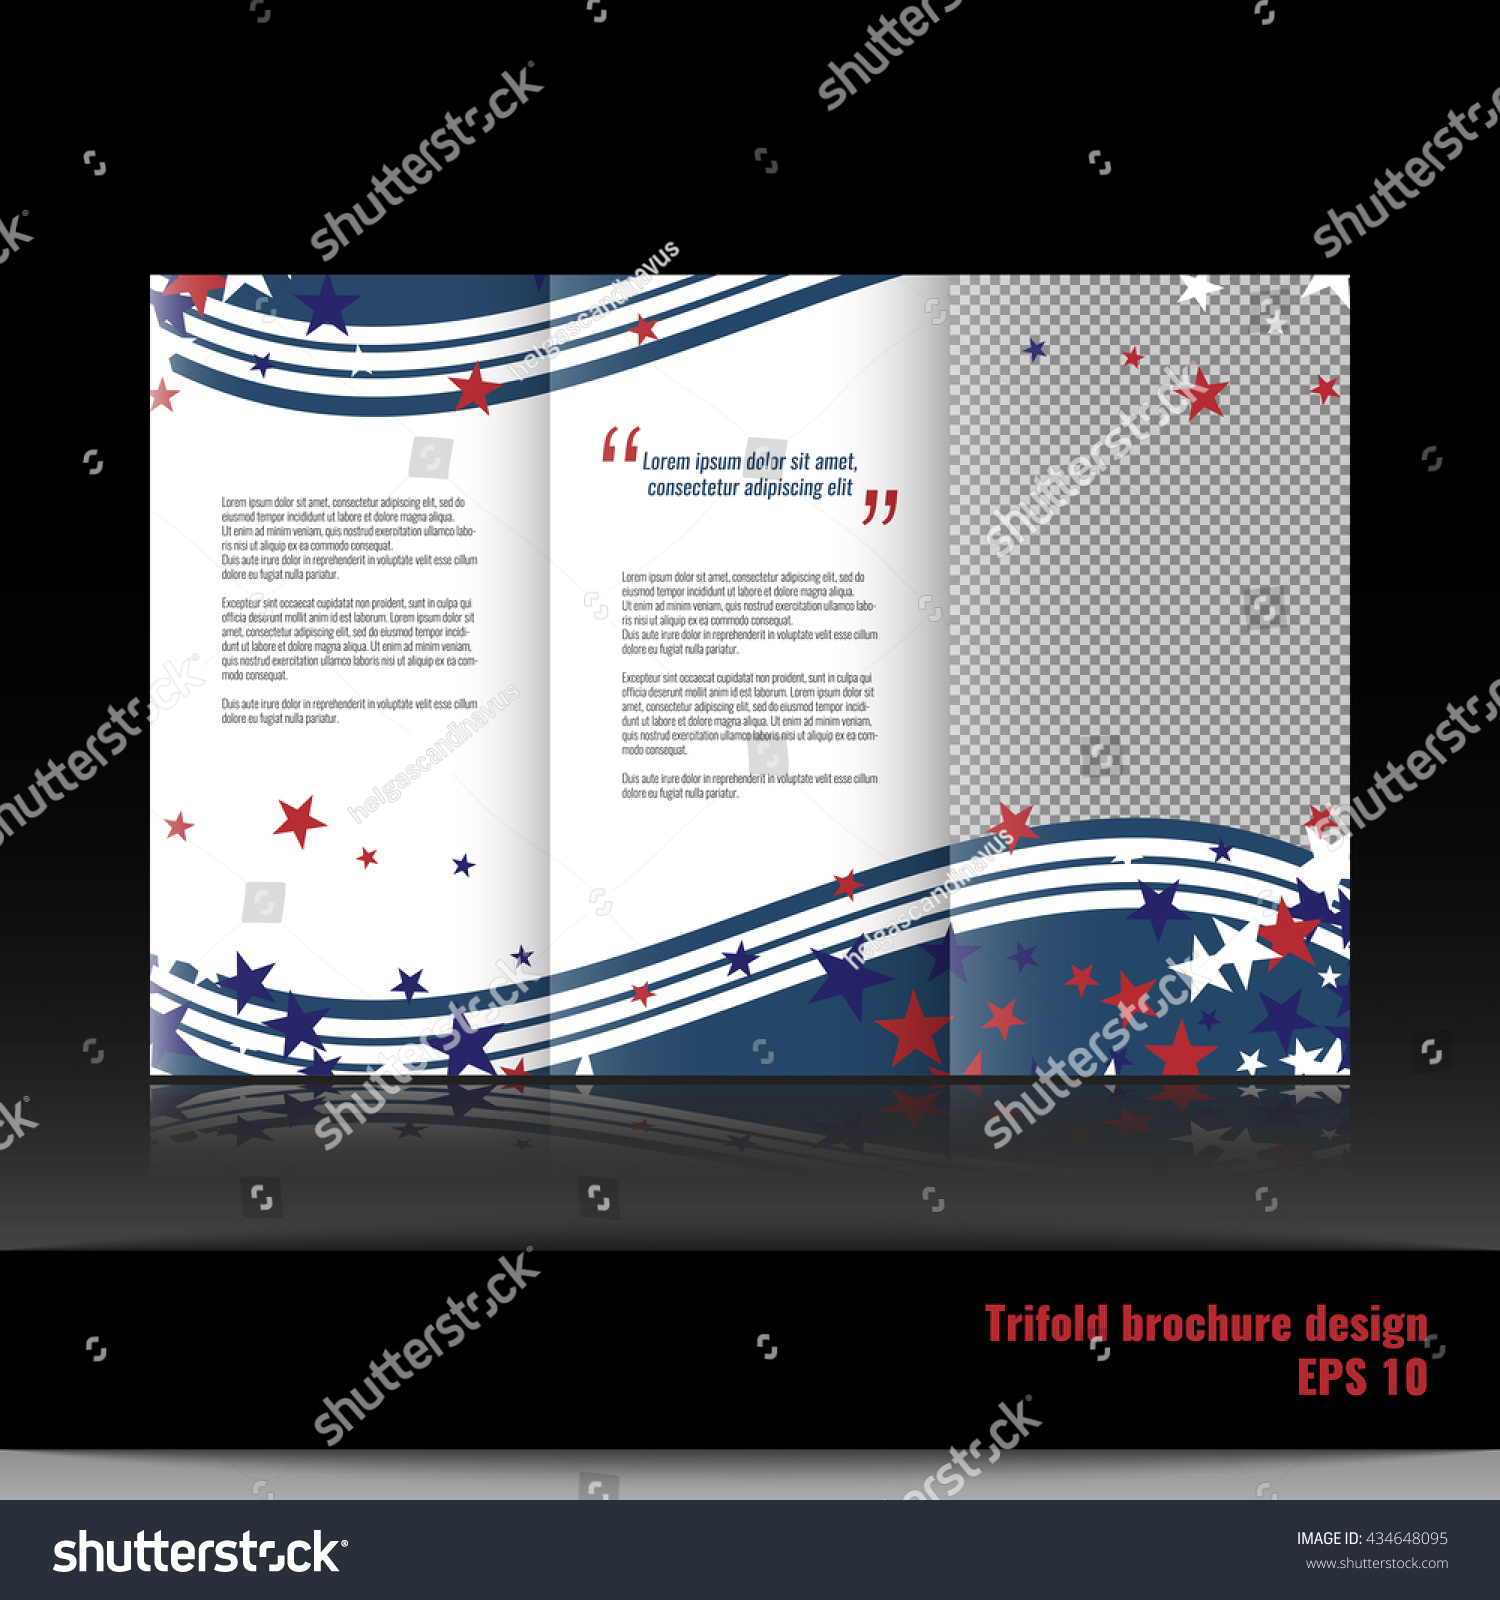 trifold business brochure template design with american theme background stars and stripes stock vector